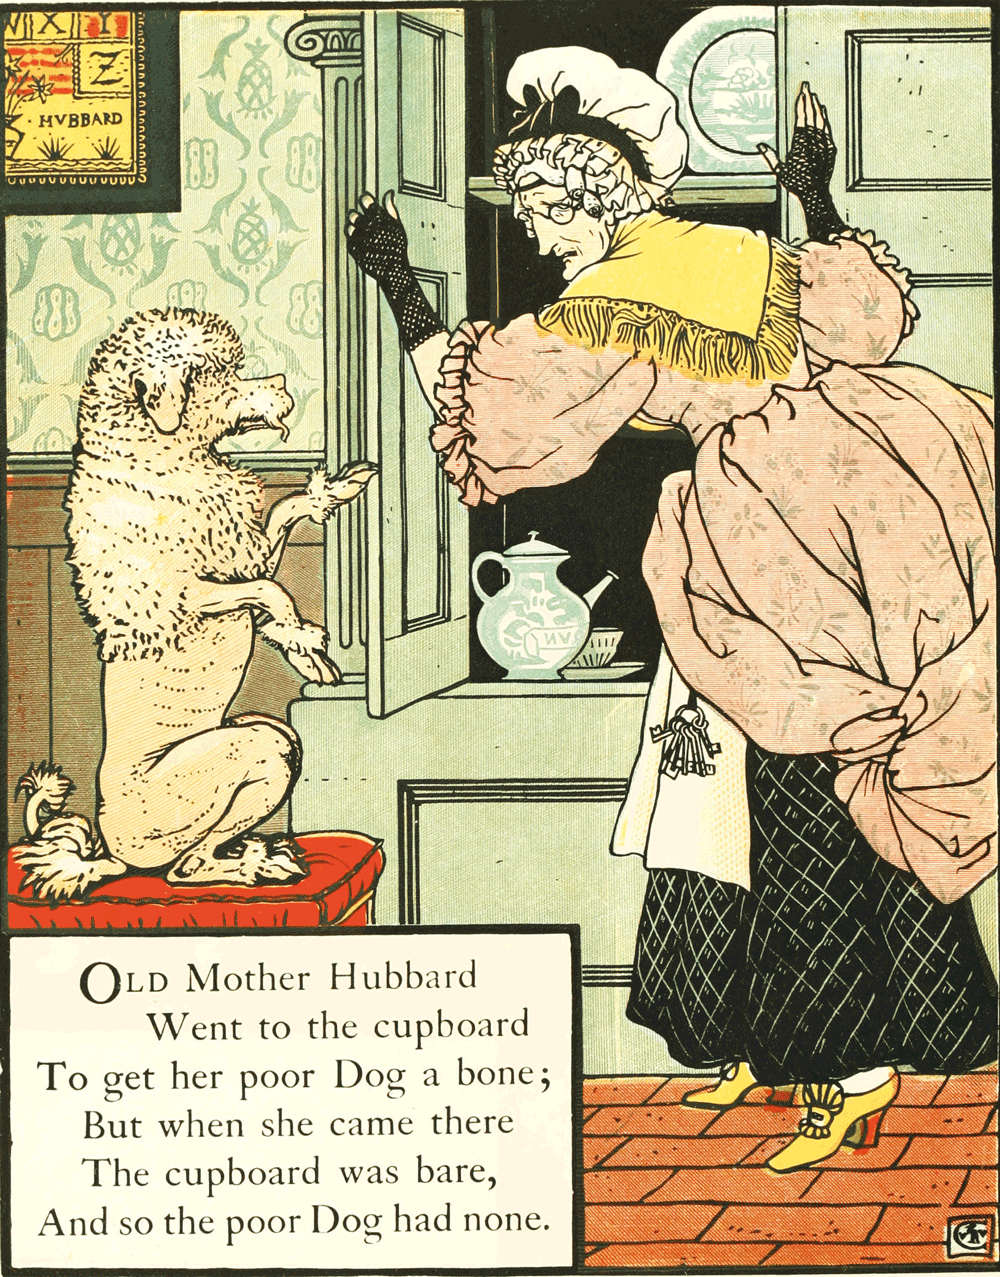 mother hubbard - children verse books - national poetry day